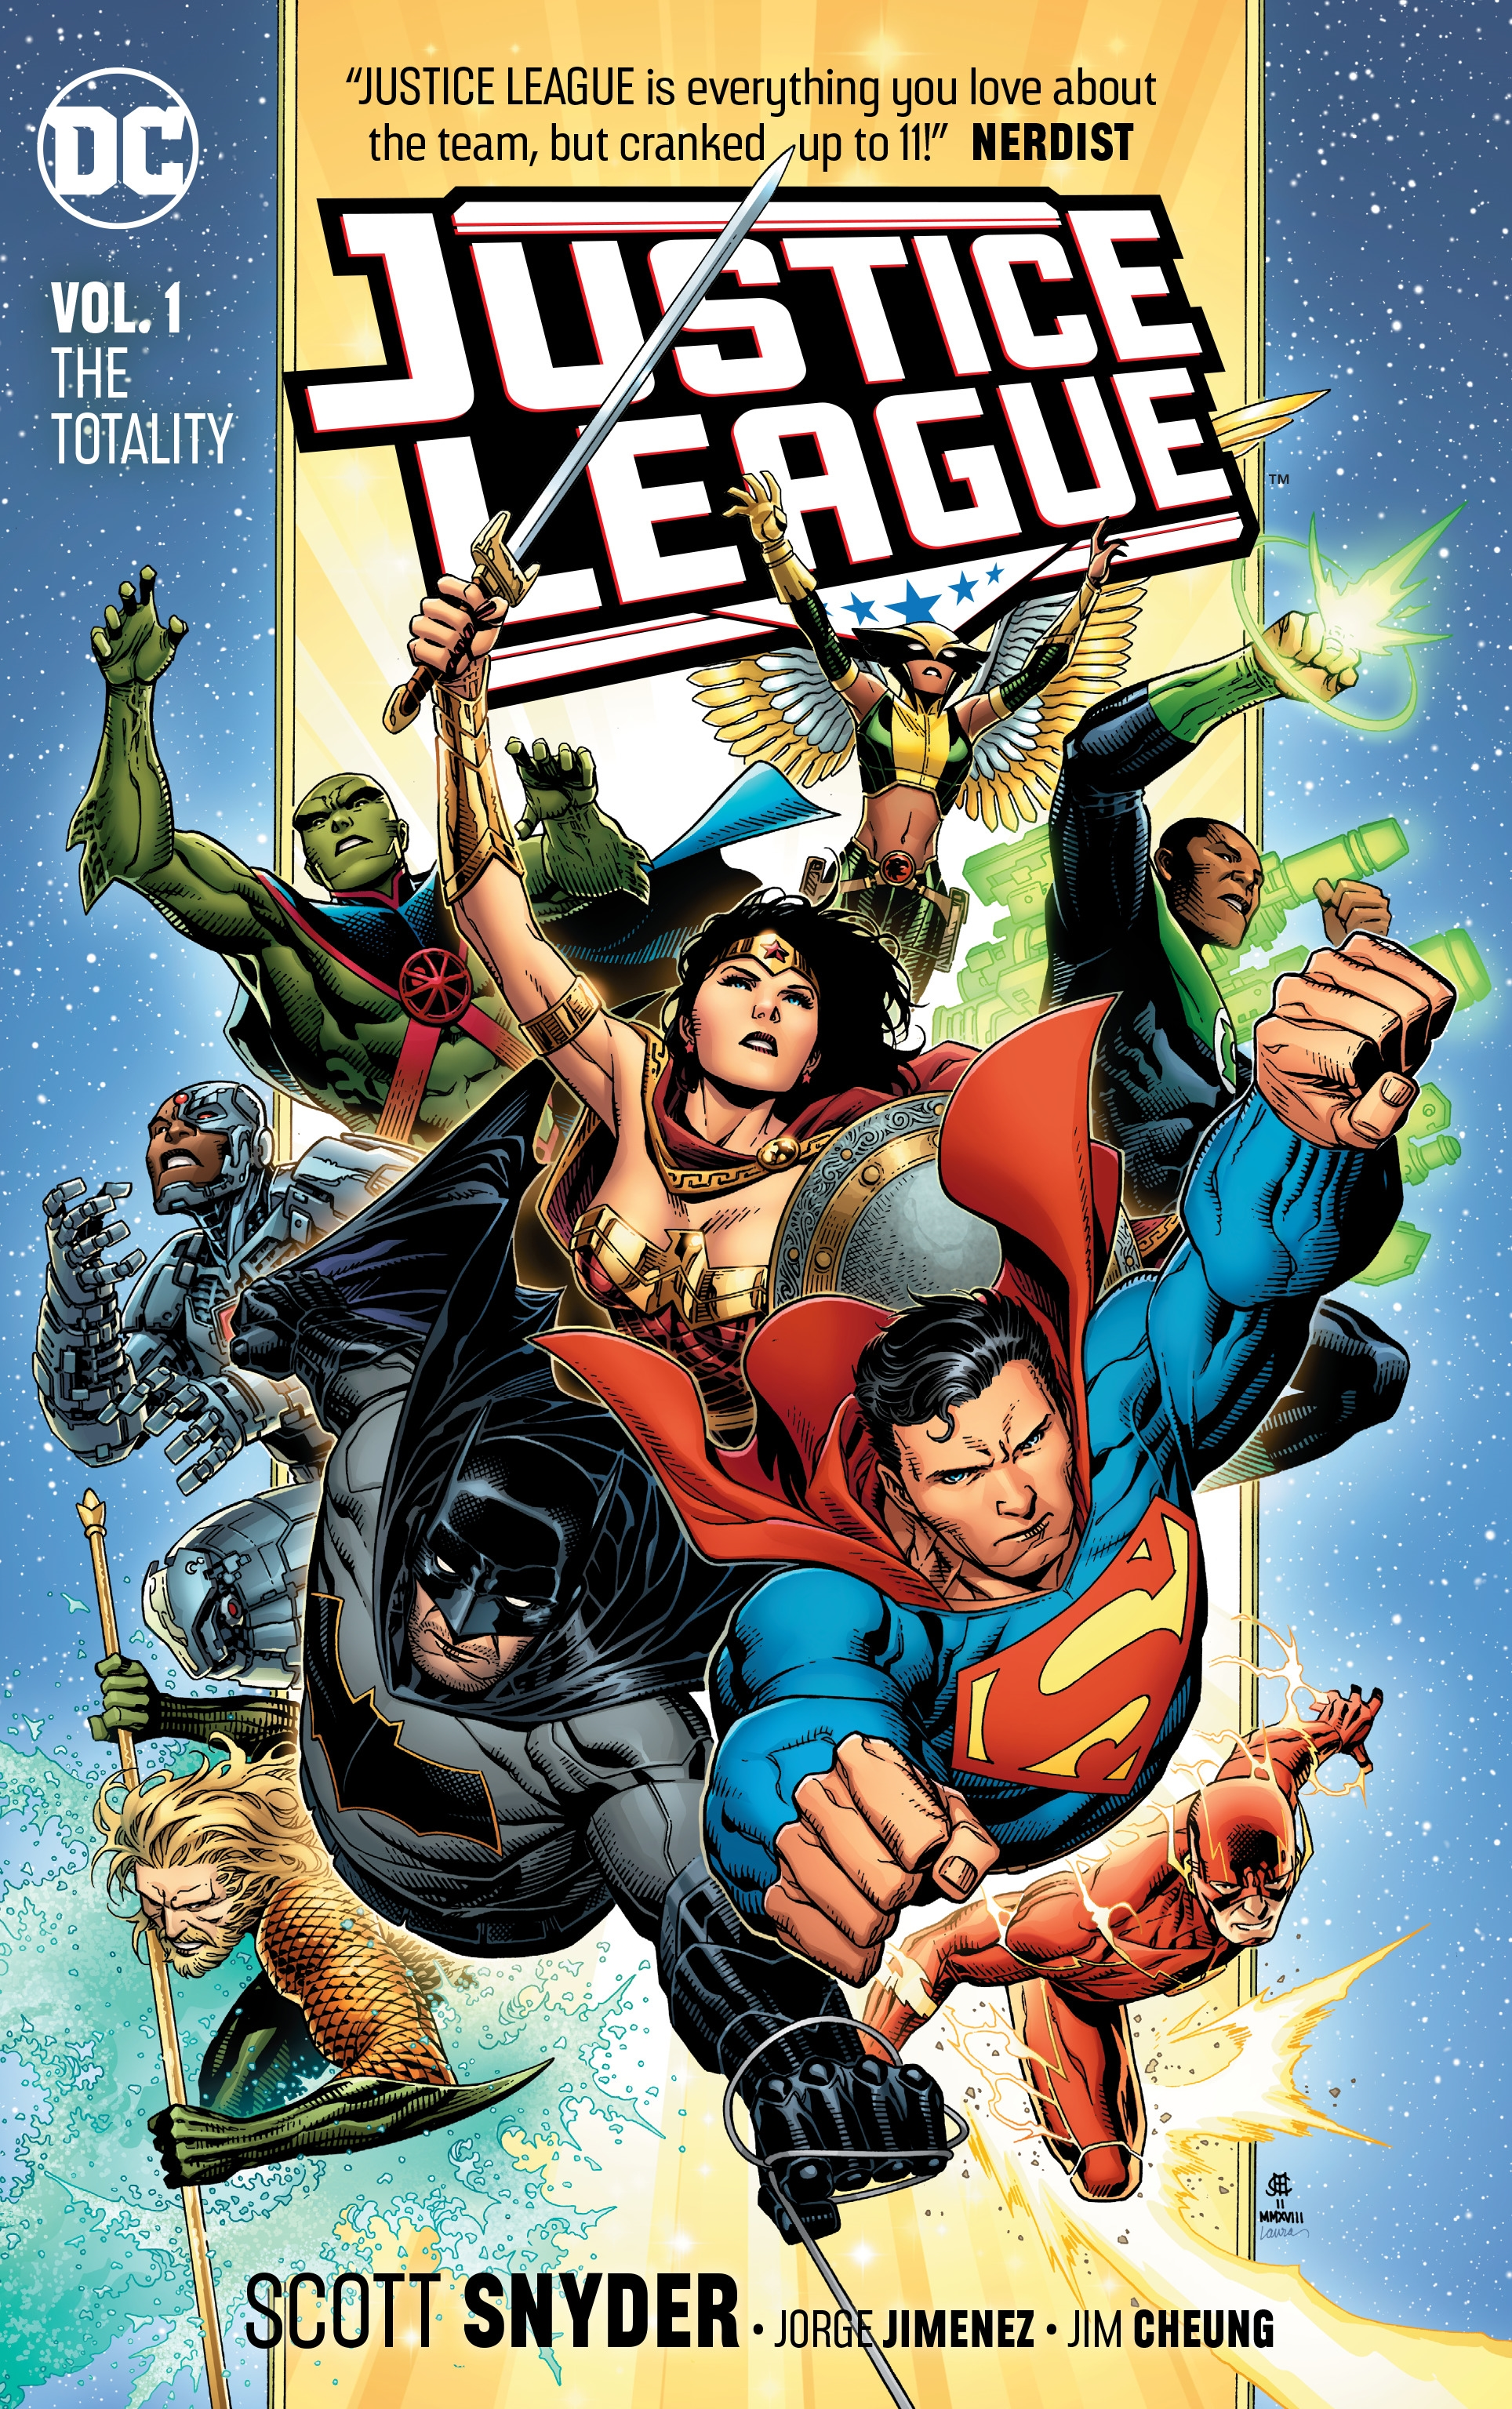 Justice League Vol. 1 by Scott Snyder, ISBN: 9781401284992